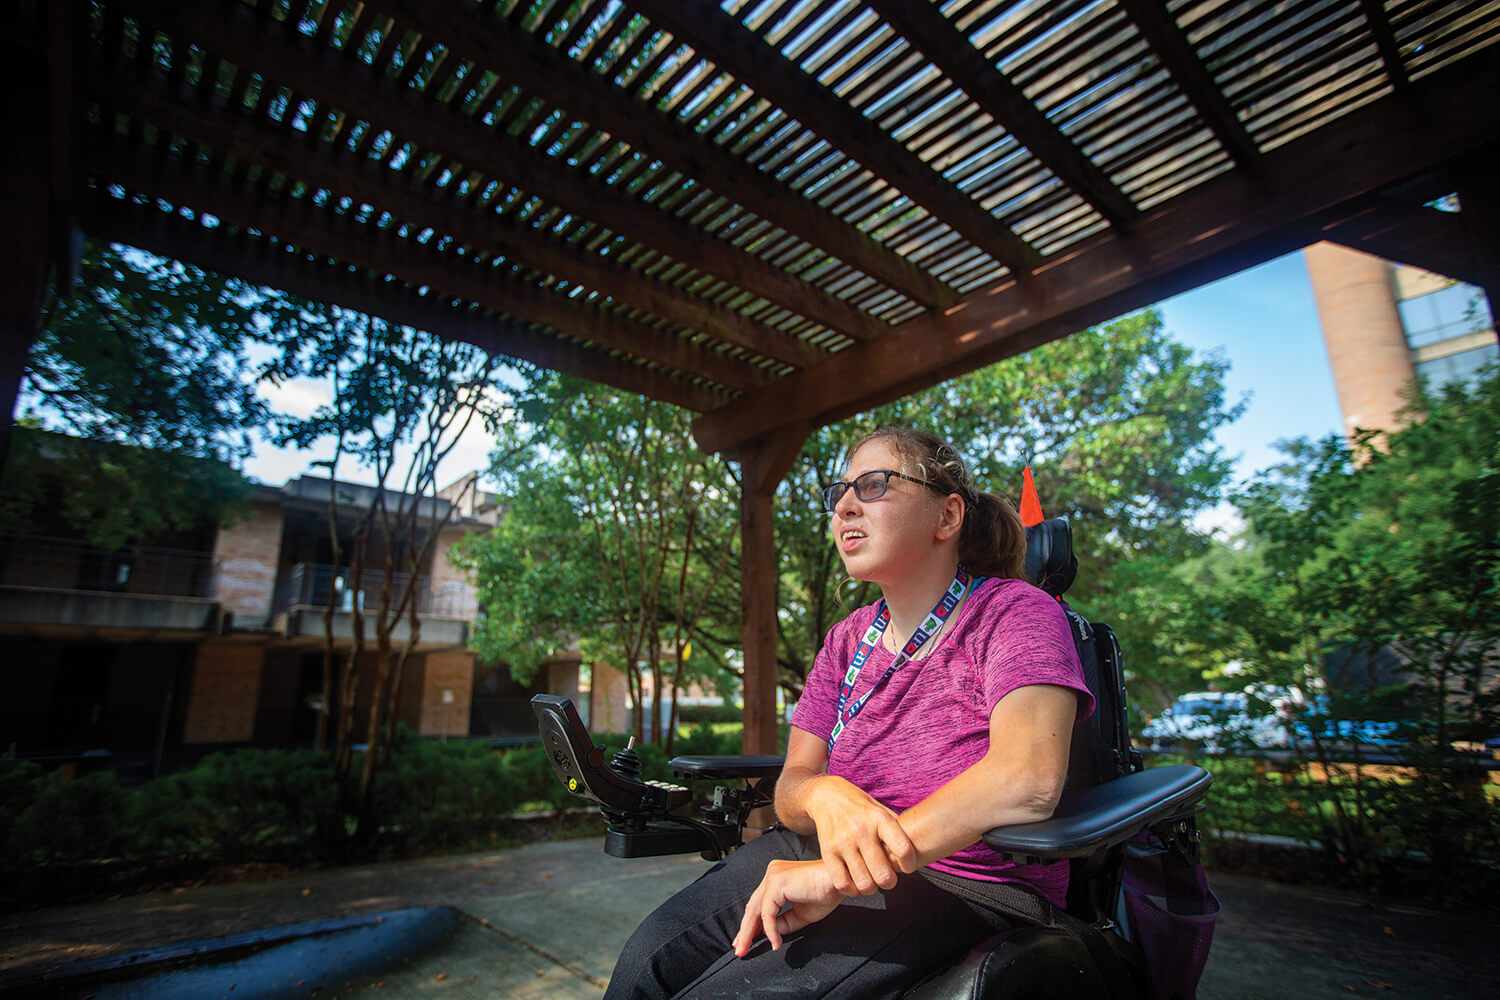 Allison Rosenberg is a patient at Baylor College of Medicine's Transition Medicine Clinic.